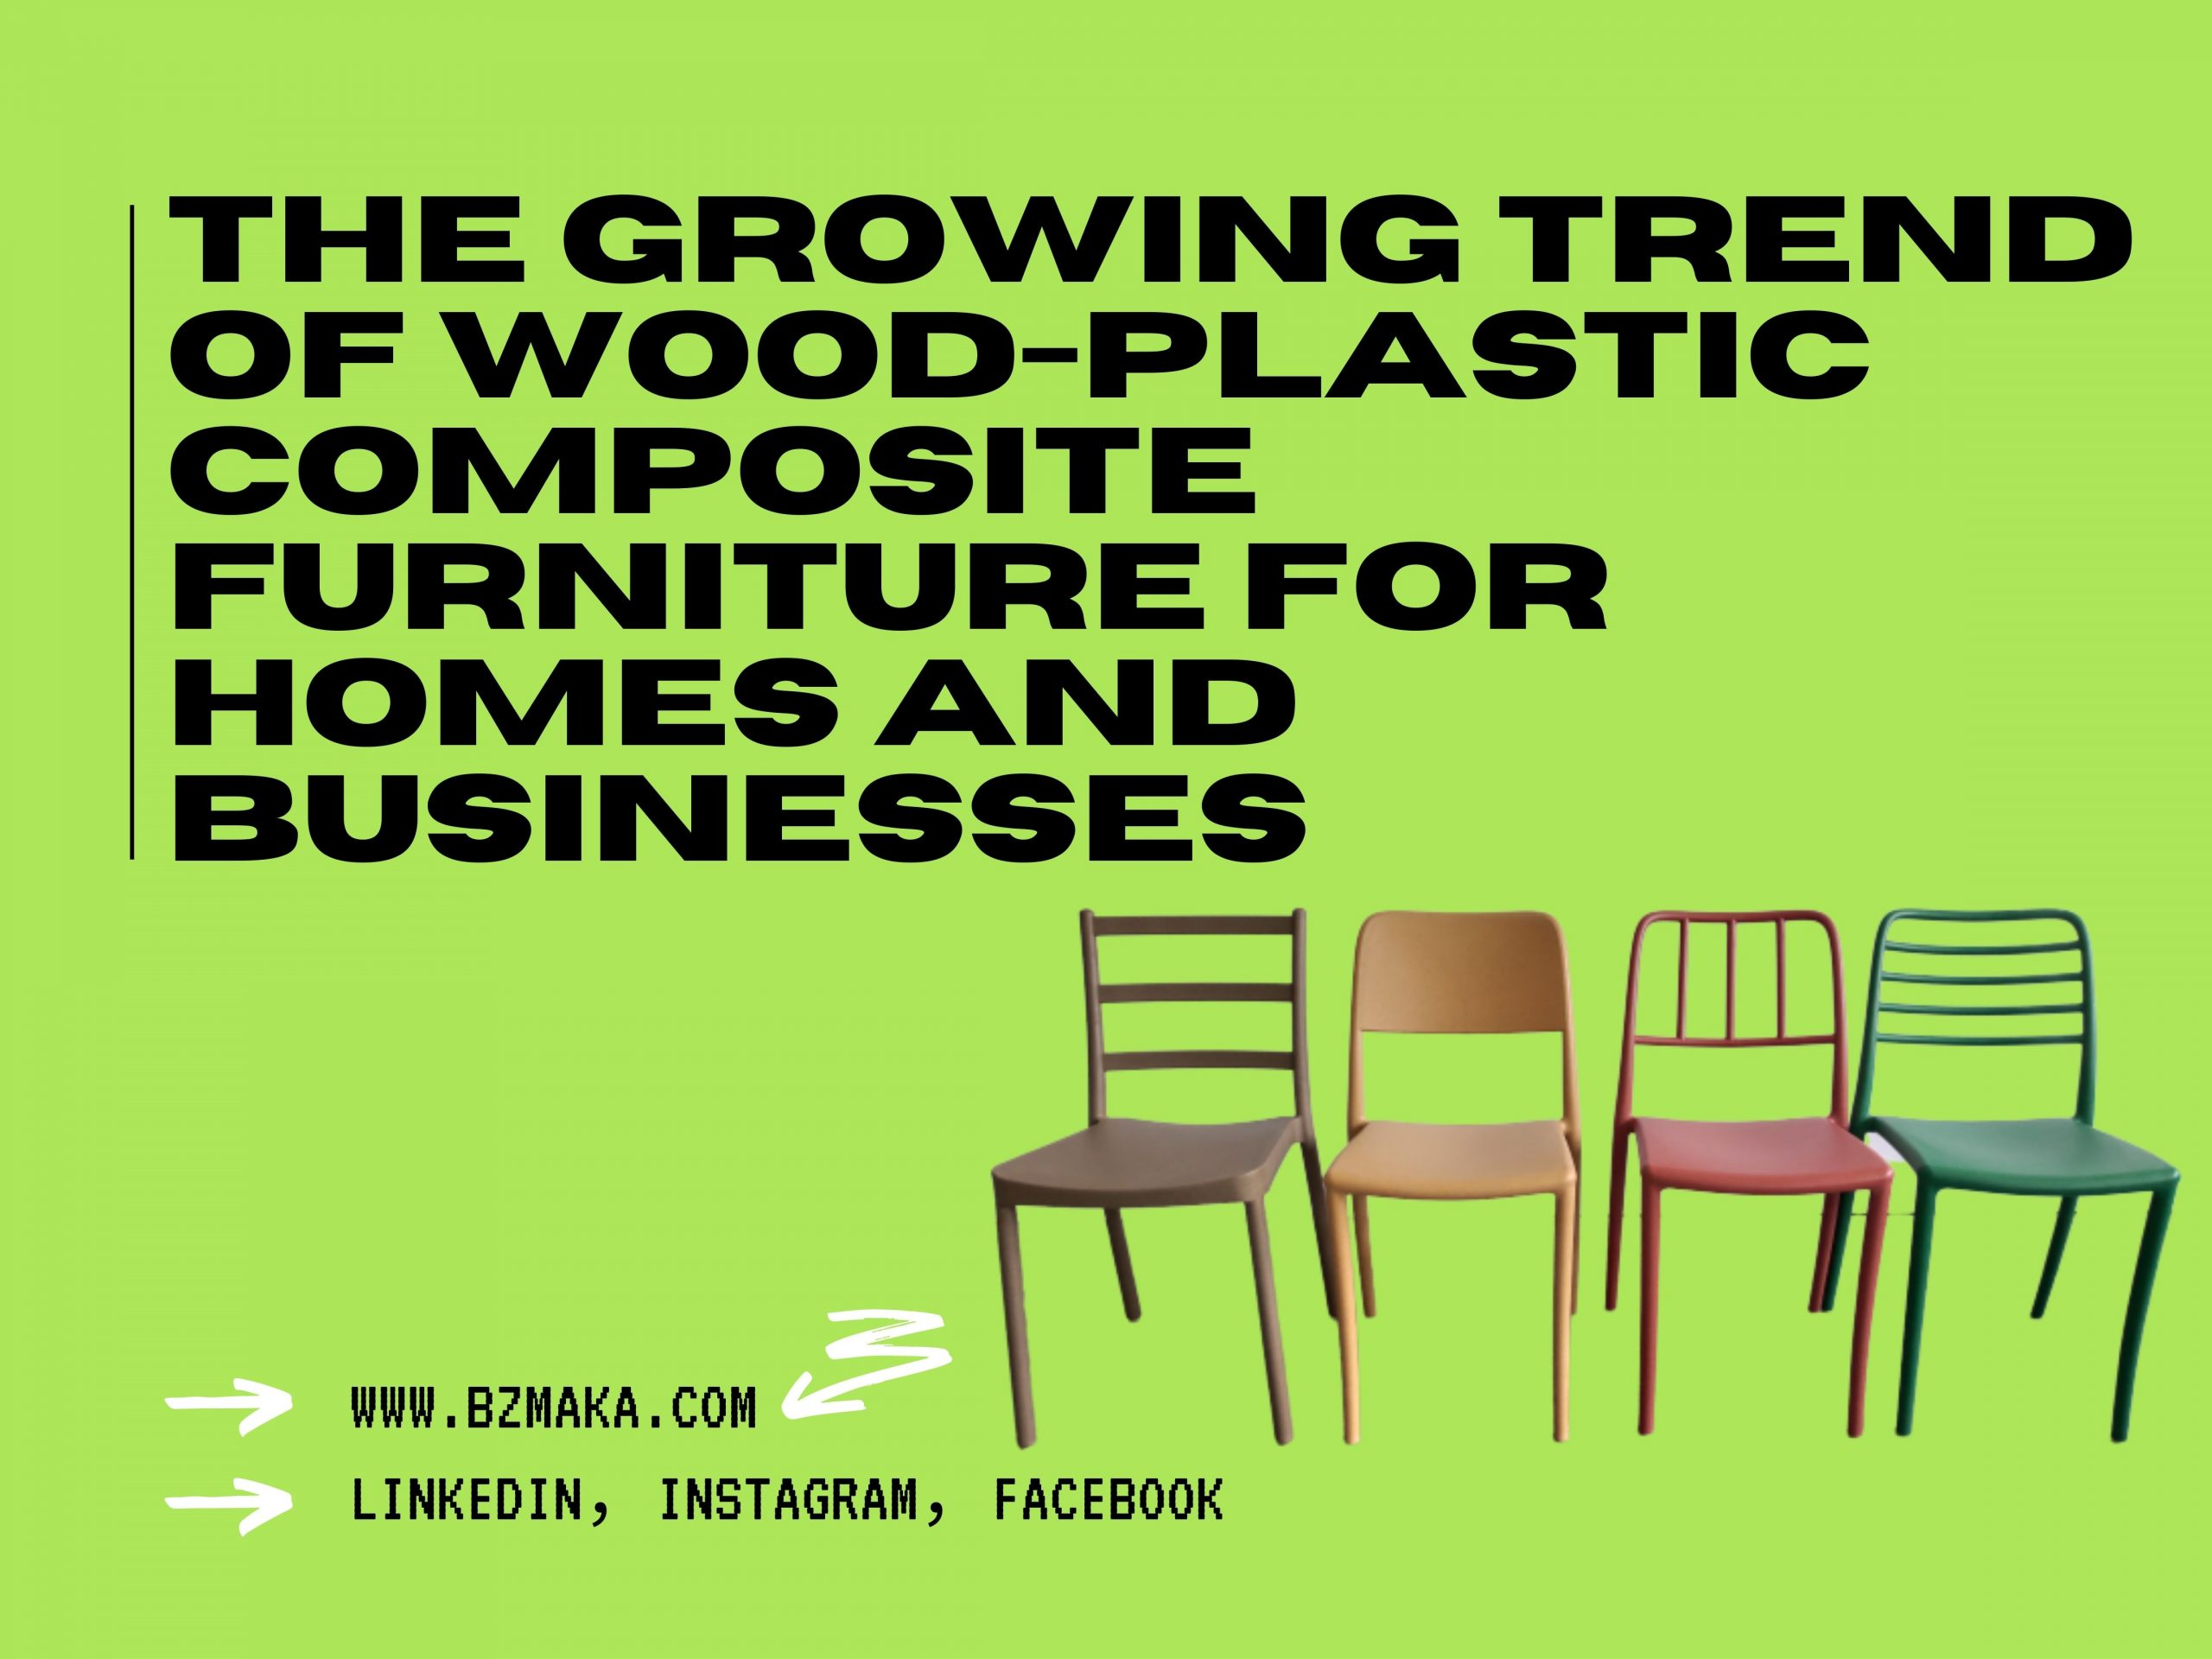 The Growing Trend of Wood Plastic Composite Furniture for Homes and Businesses scaled